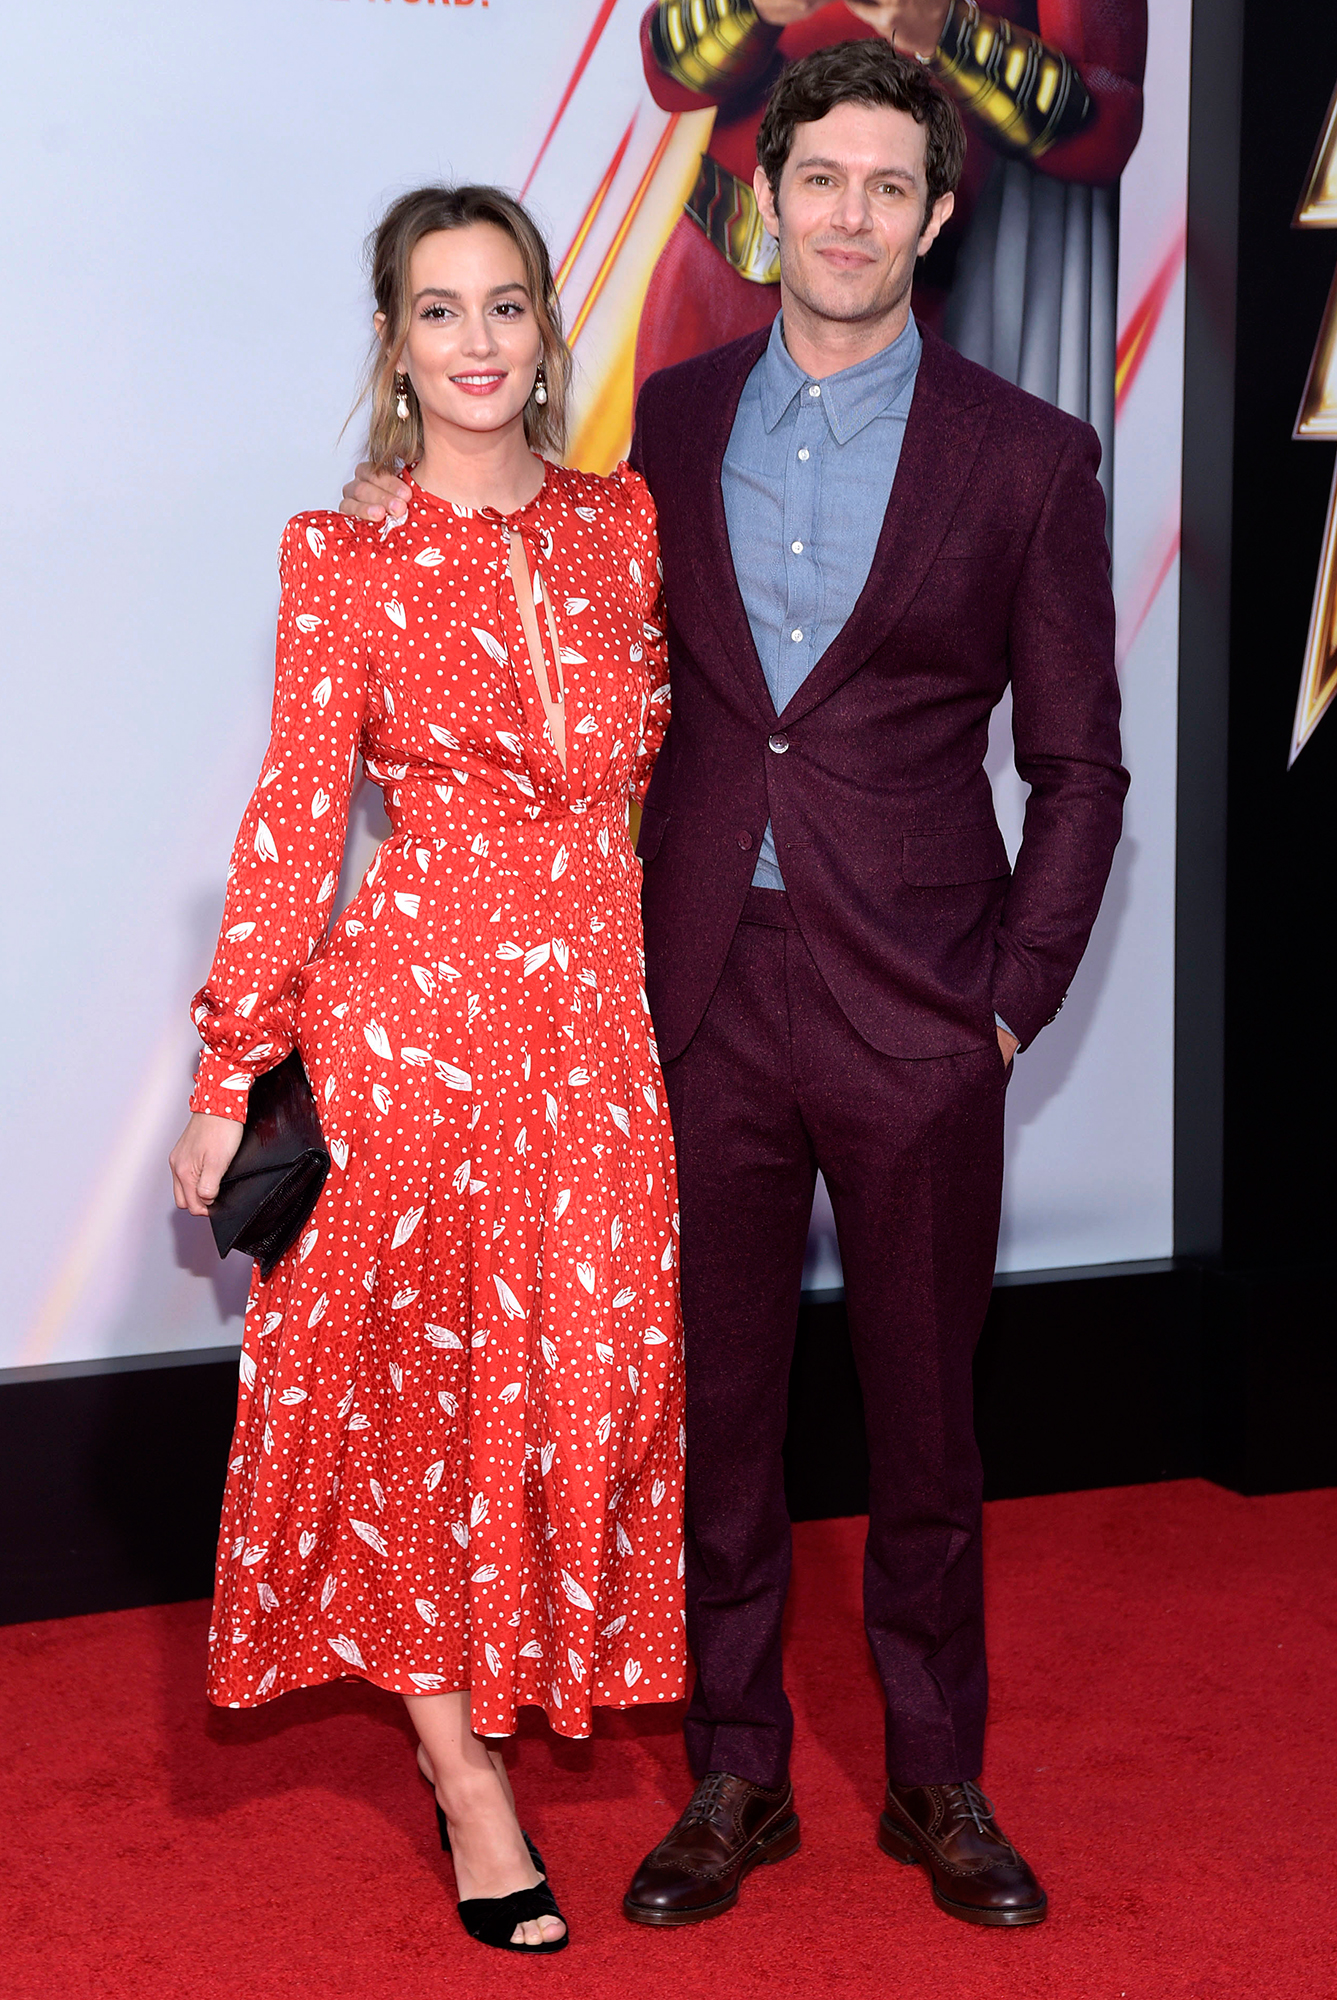 """Leighton Meester and Adam Brody Steal the Show on Their First Red Carpet in More Than 2 Years - """"I do some stuff but she definitely does the heavy lifting (figuratively),"""" Brody quipped of his home life in an August 2014 Reddit Q & A. """"Literally, I do the heavy lifting."""""""